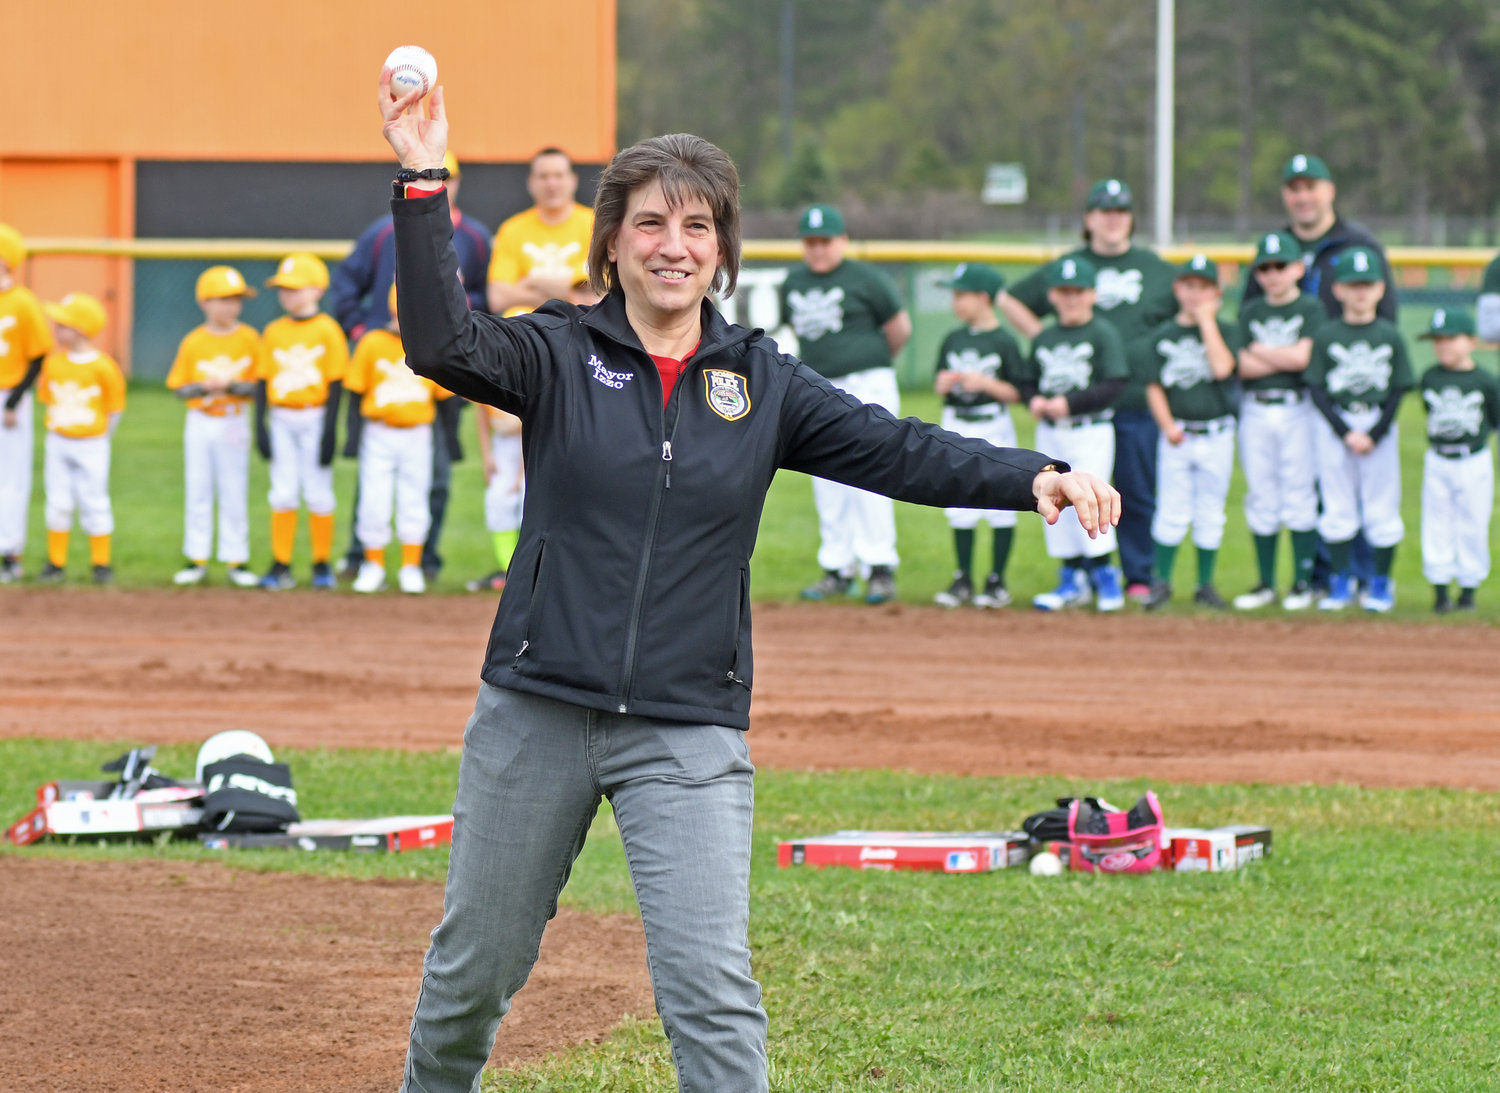 Mayor Jacqueline M. Izzo throws out one of the first pitches.